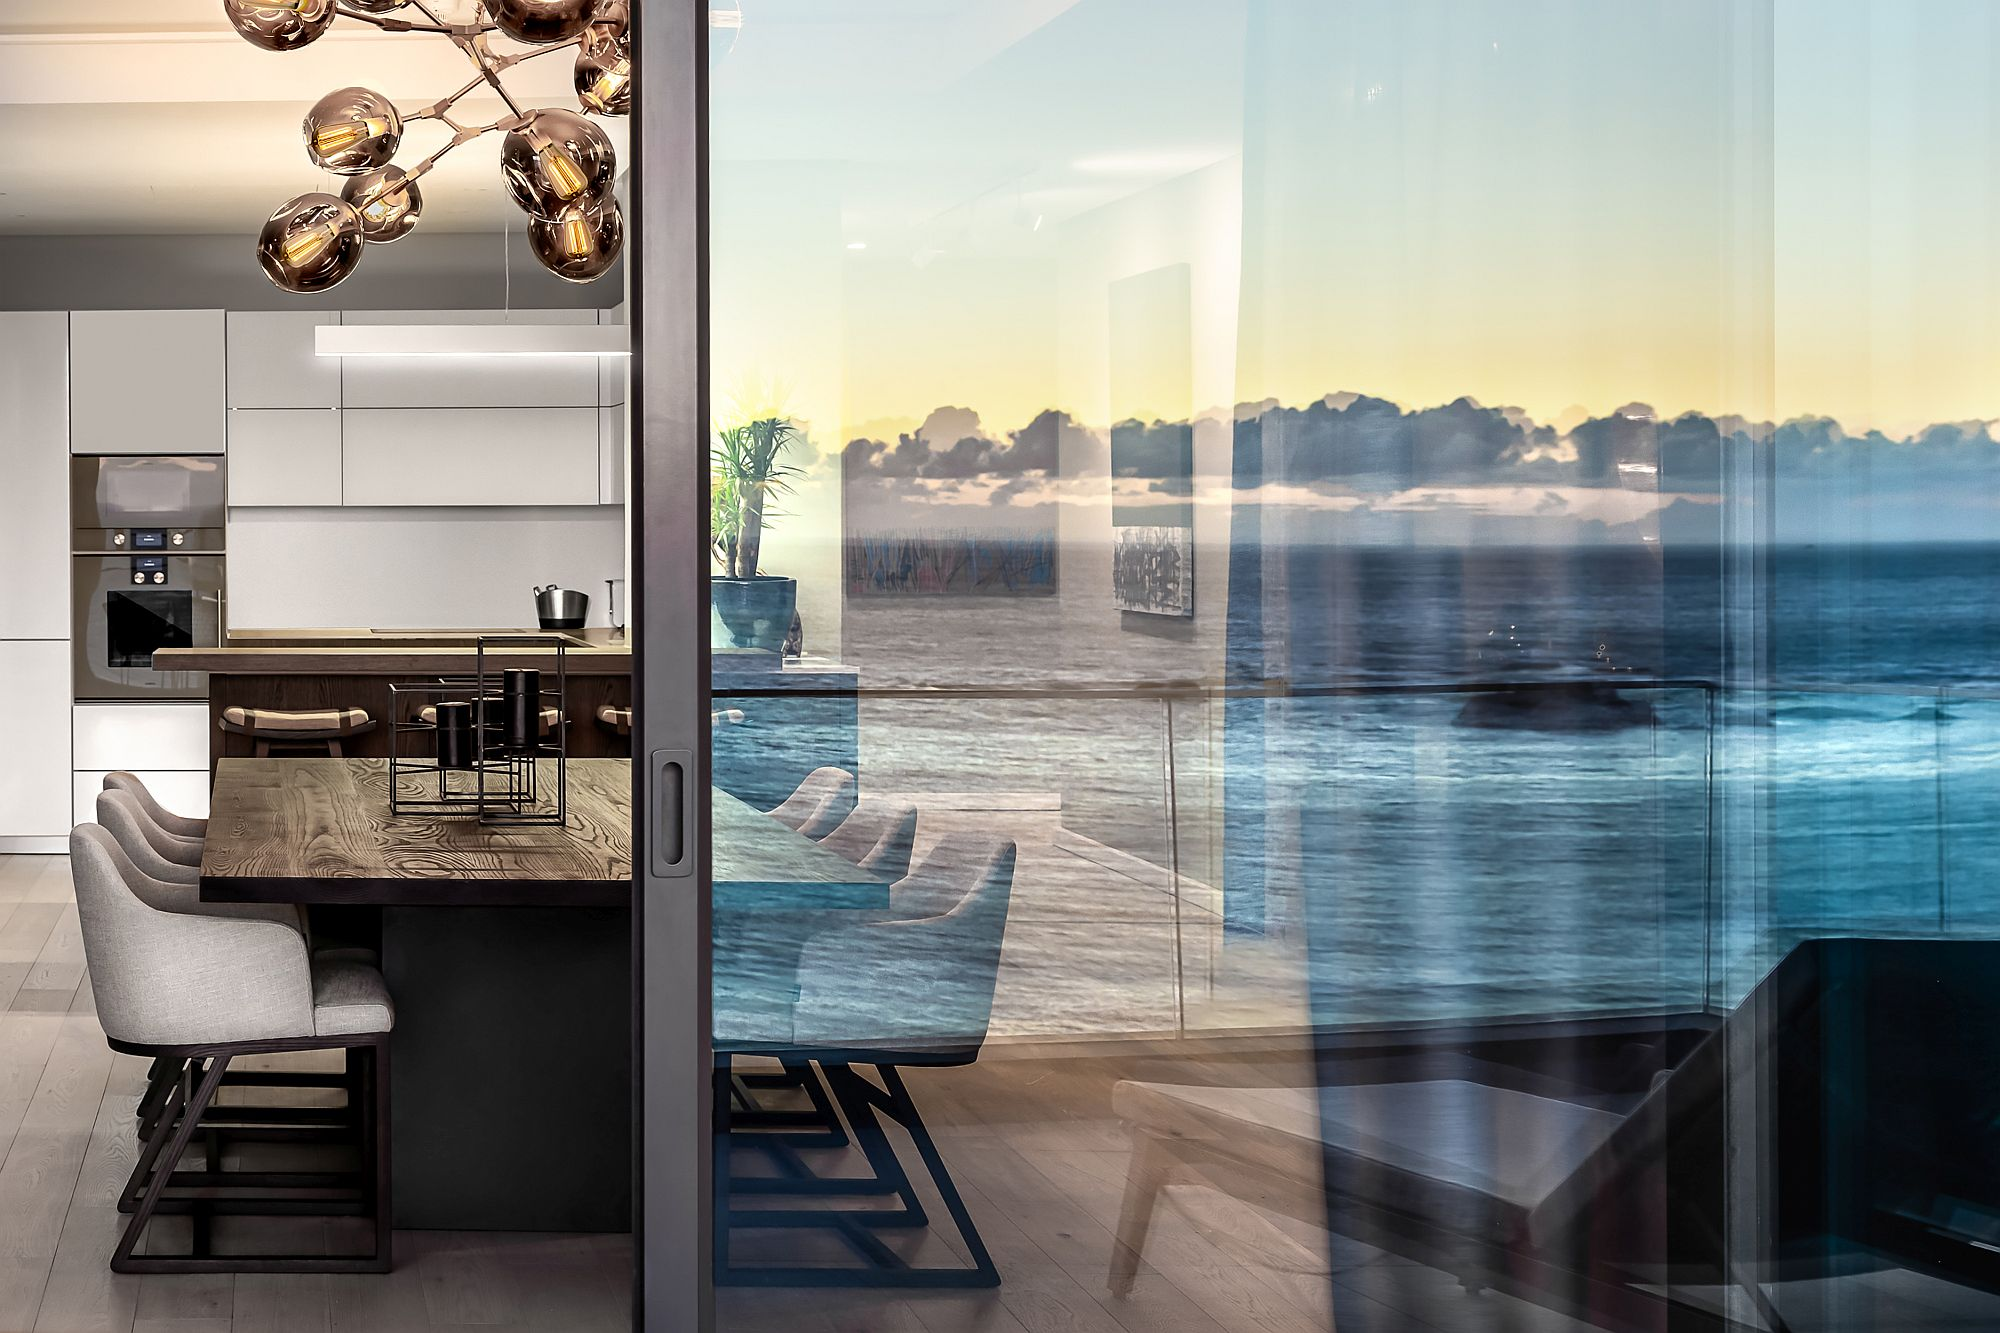 1563443575 284 quiet sophistication draped in the best of cape town stunning clifton 301 by okha - Quiet Sophistication Draped in the Best of Cape Town: Stunning Clifton 301 by OKHA